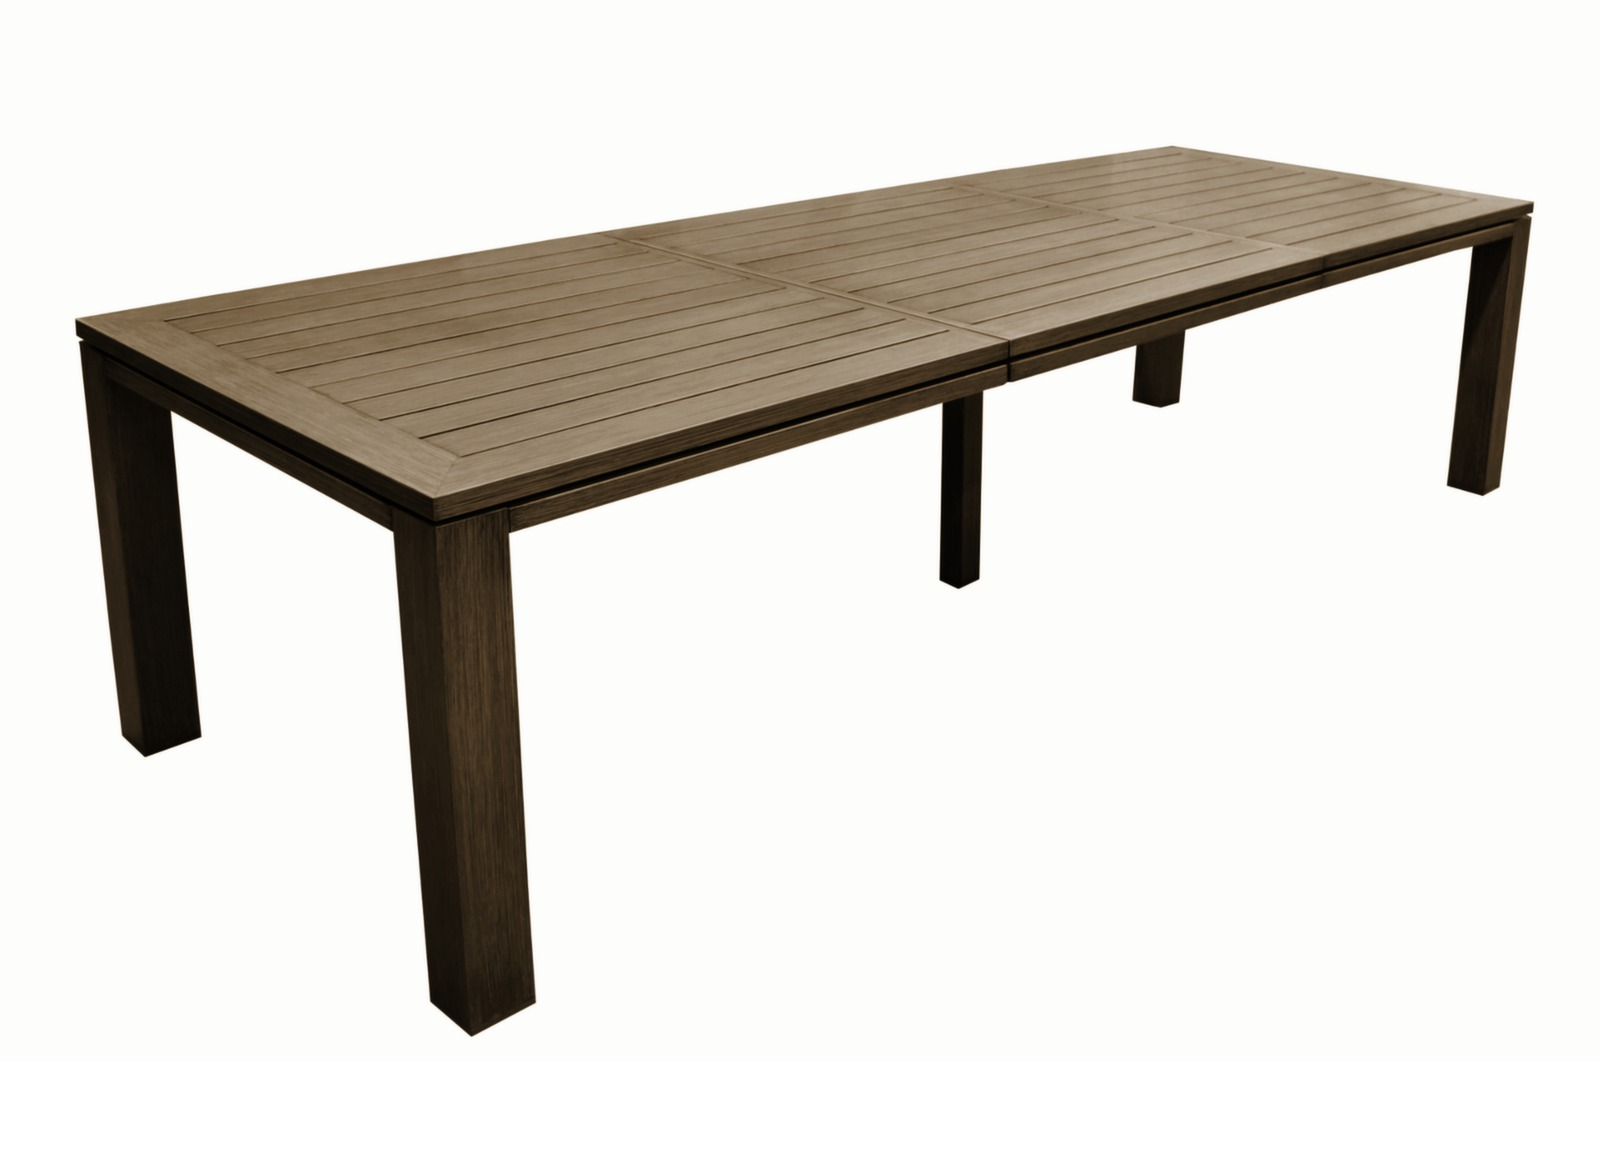 Grande Table Jardin Grande Table De Jardin Grande Table Basse De Jardin